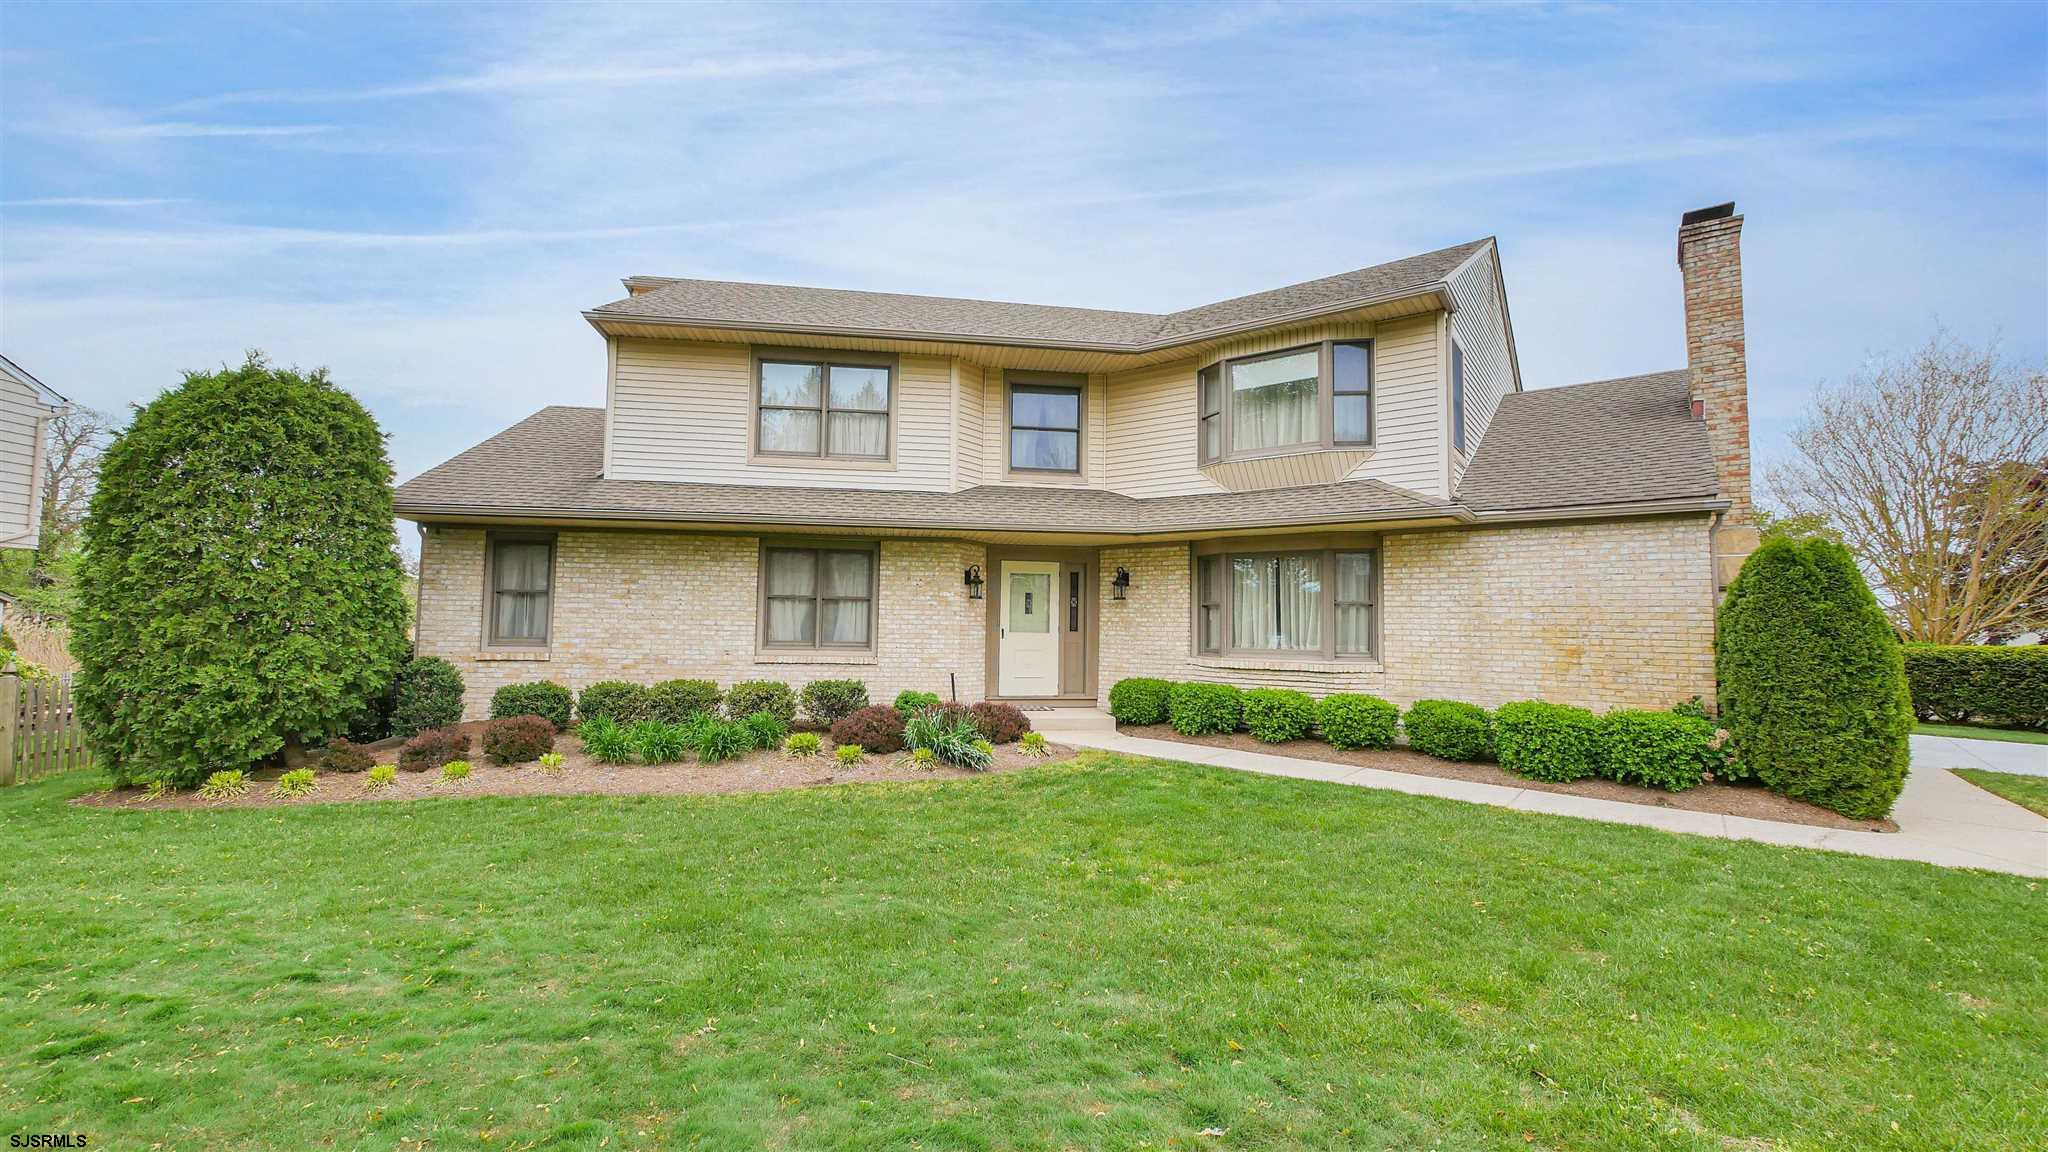 Sought after Linwood location! Stately, brick front home, custom built for original owners at the end of the quiet cul de sac on oversized lot. Well appointed layout with spacious rooms, great for entertaining, home office and waiting for your personal touch! Large eat in kitchen with sliders to back deck overlooking the meadows and shore skyline. Family room with brick walled, wood burning, fireplace for cozy nights. Formal living and dining room that flow nicely into kitchen for holiday celebrations. 3 Large bedrooms with Master suite and master bath. Mudroom and 2 car attached garage. Newer HVAC, roof replaced appx.10yrs. ago Don't miss this opportunity!